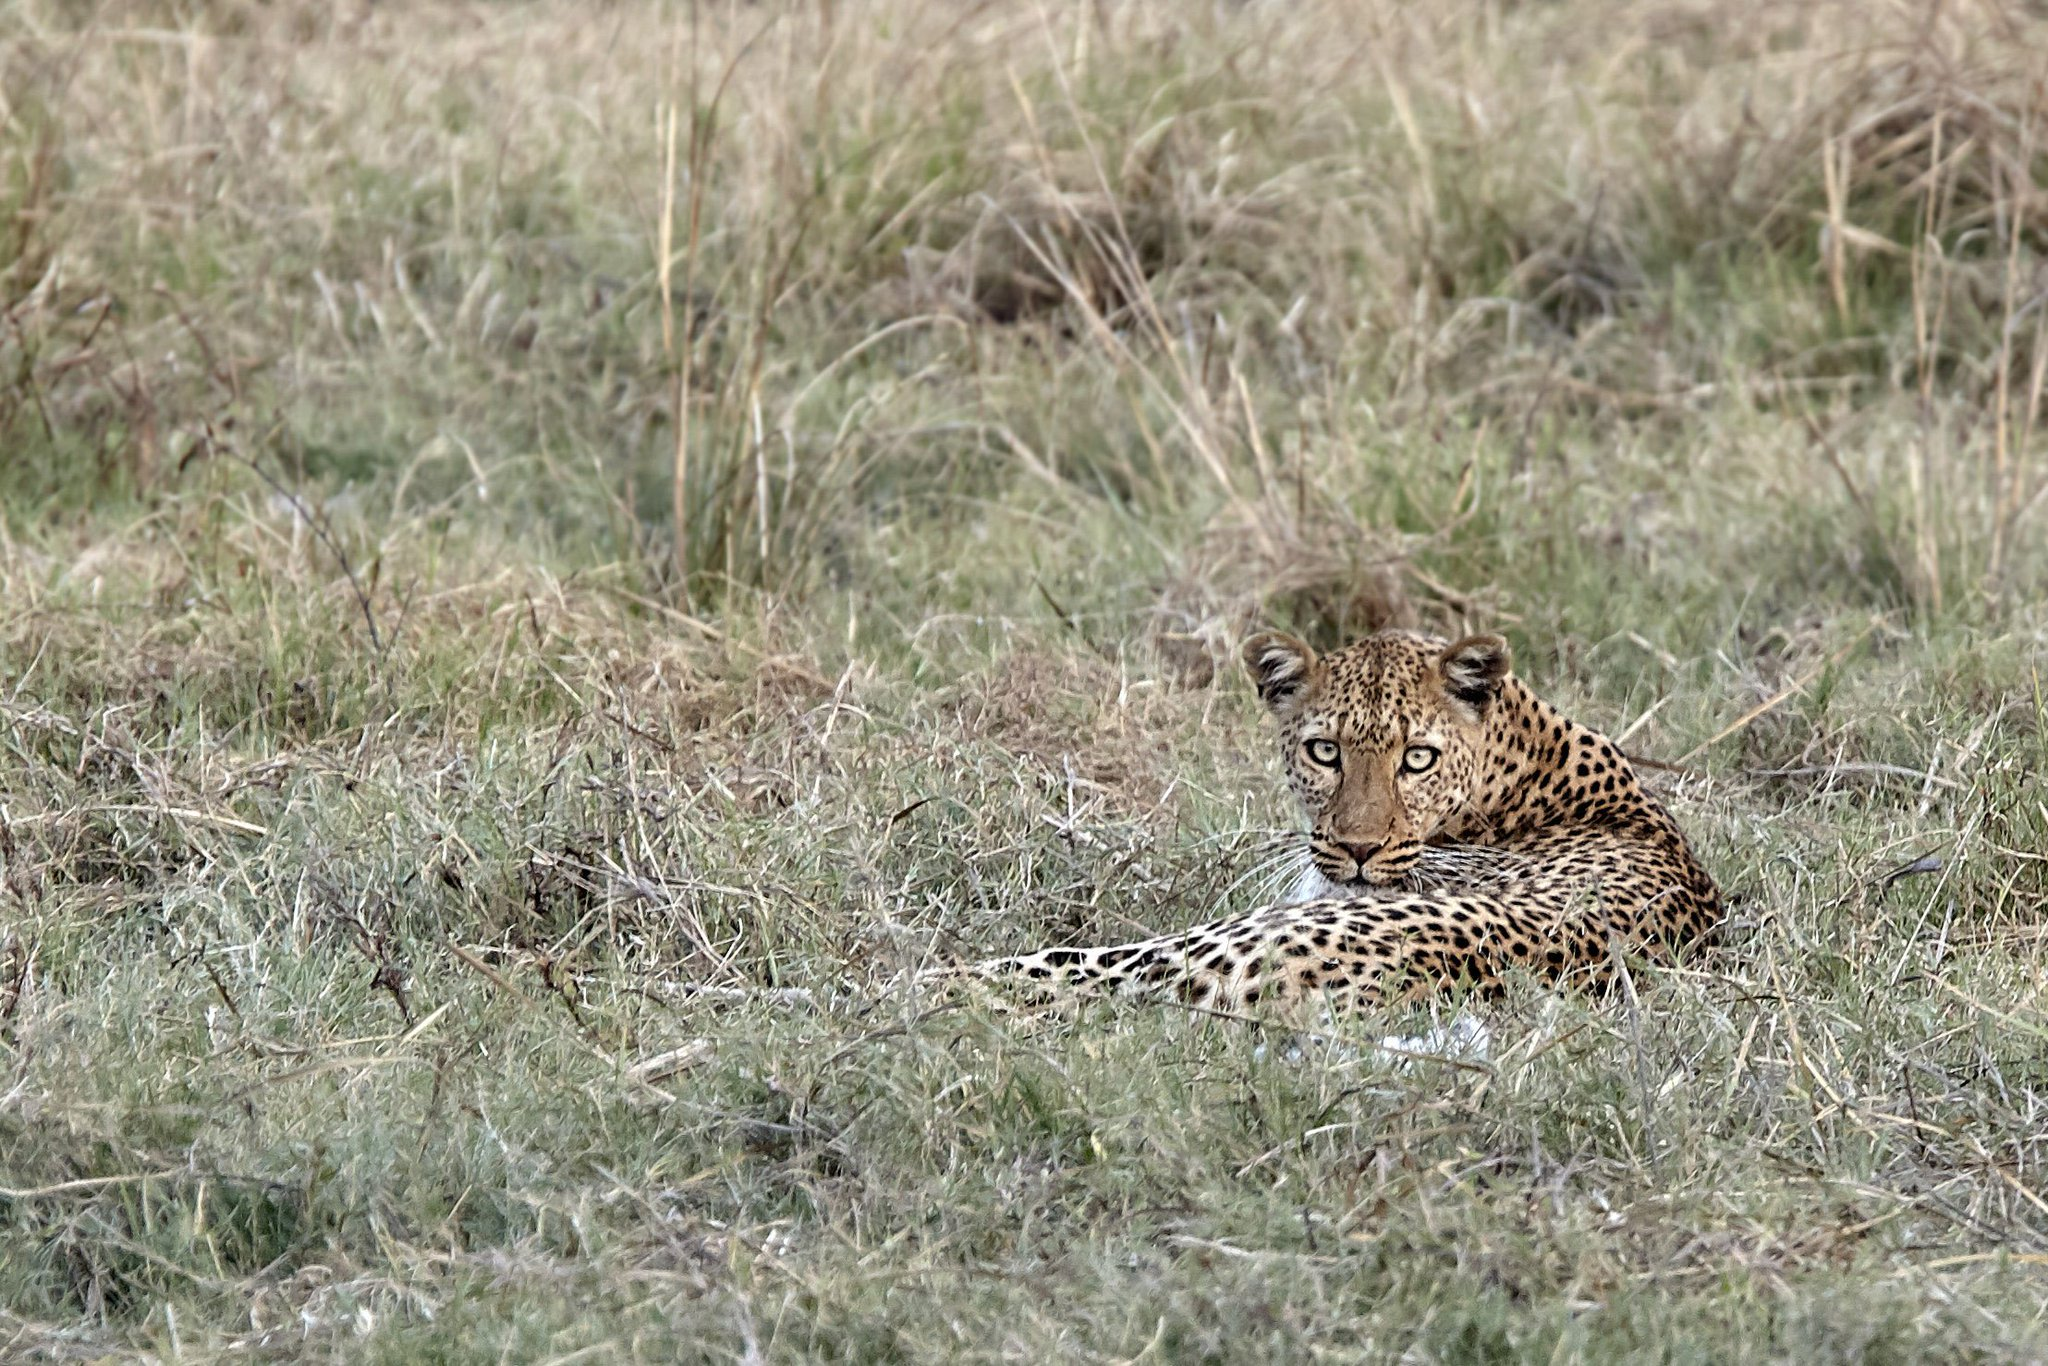 Who are you looking at? A young leopard dishes out an accusatory stare. Via Konkamoya Lodge  📸 Andrea Porro https://t.co/CnAWOBqb07